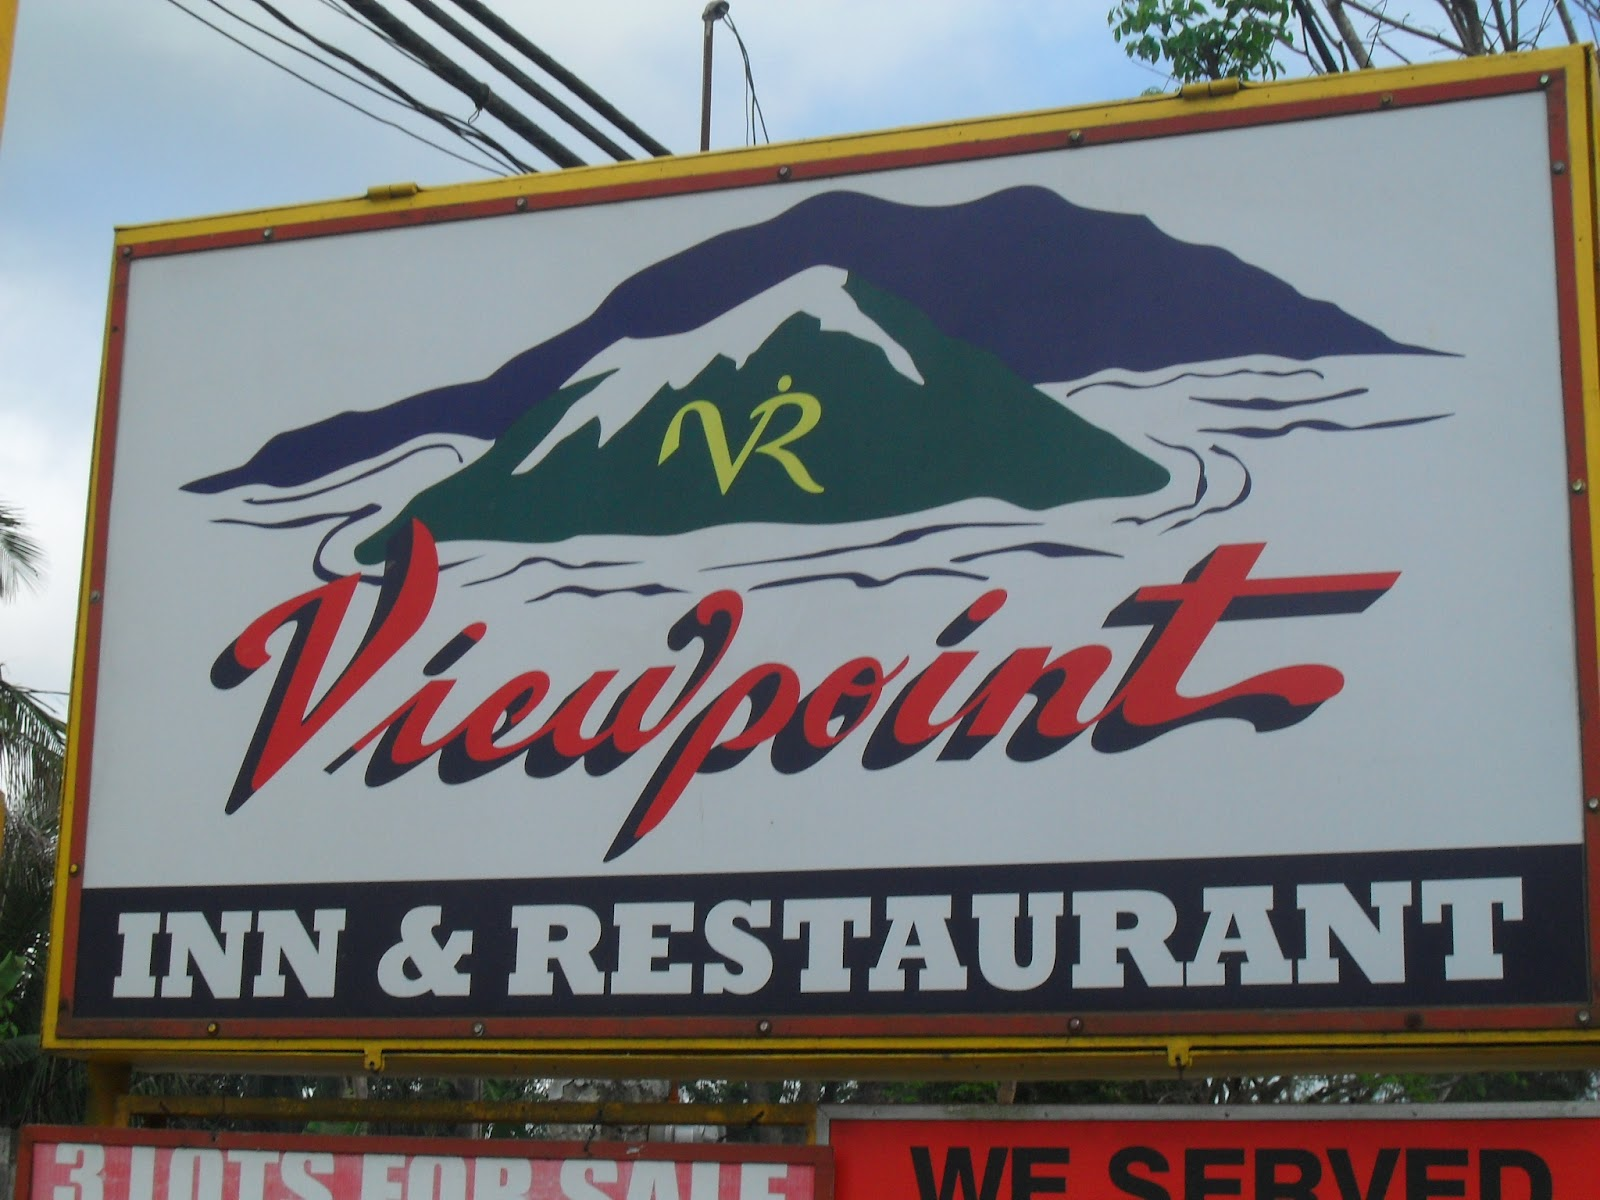 Viewpoint Inn and Restaurant